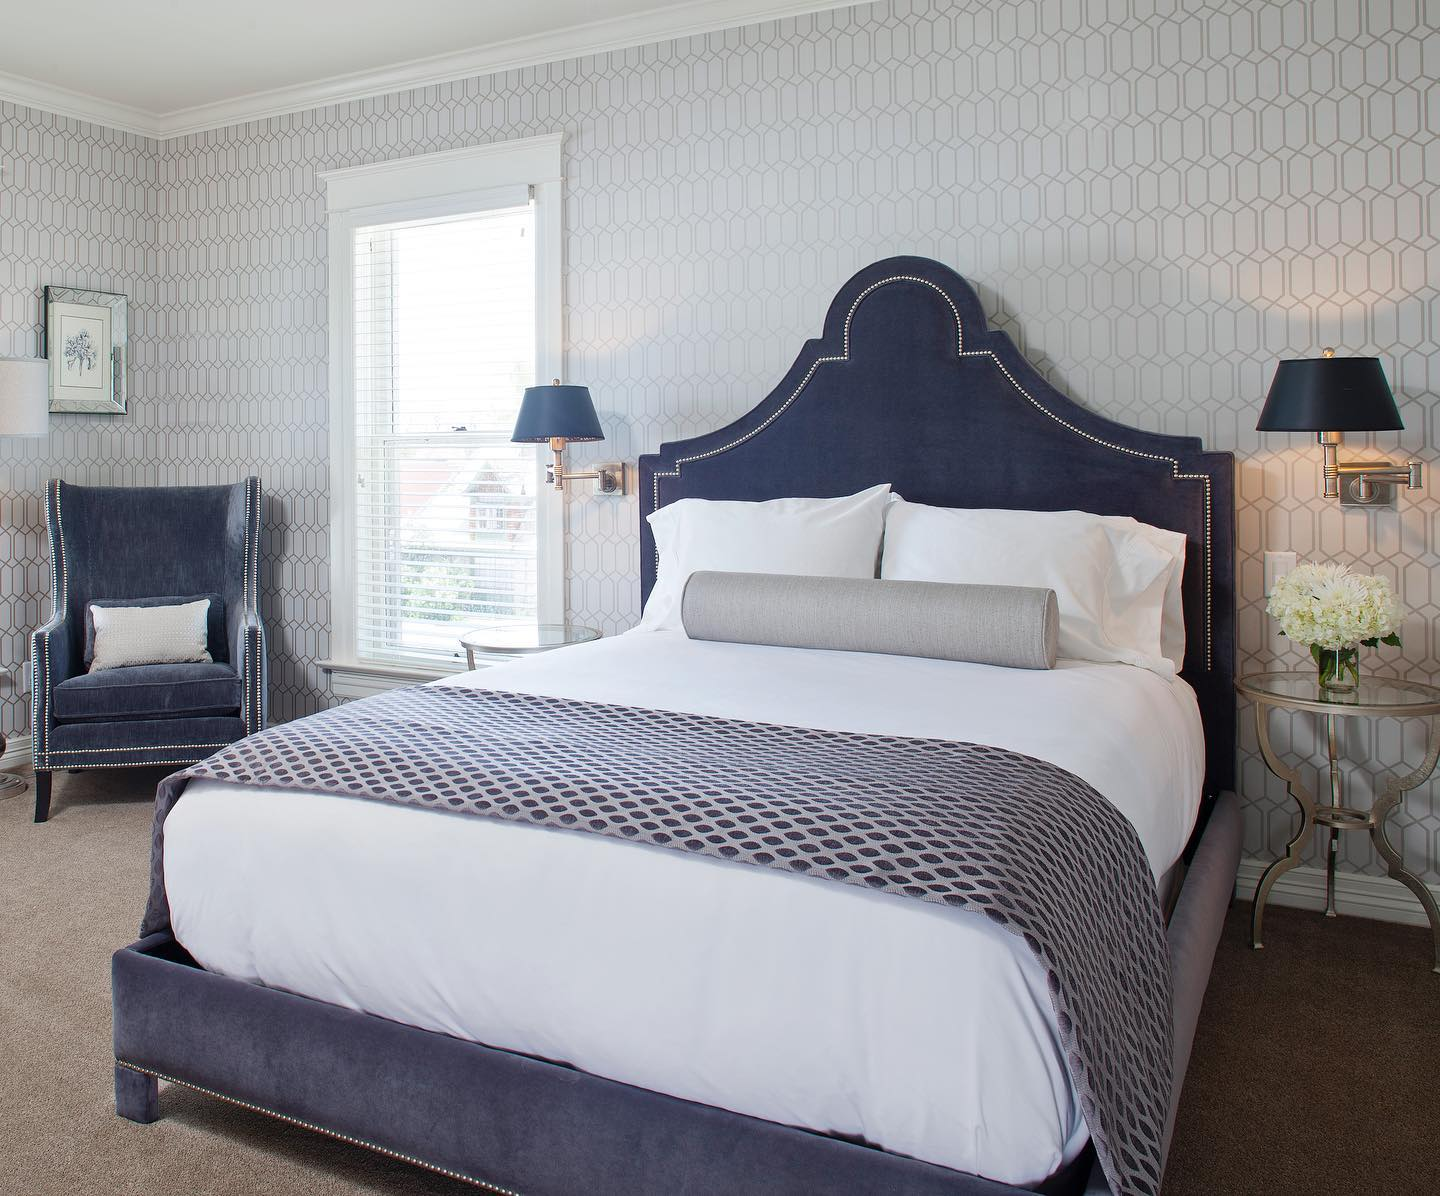 image of room at edwards house inn